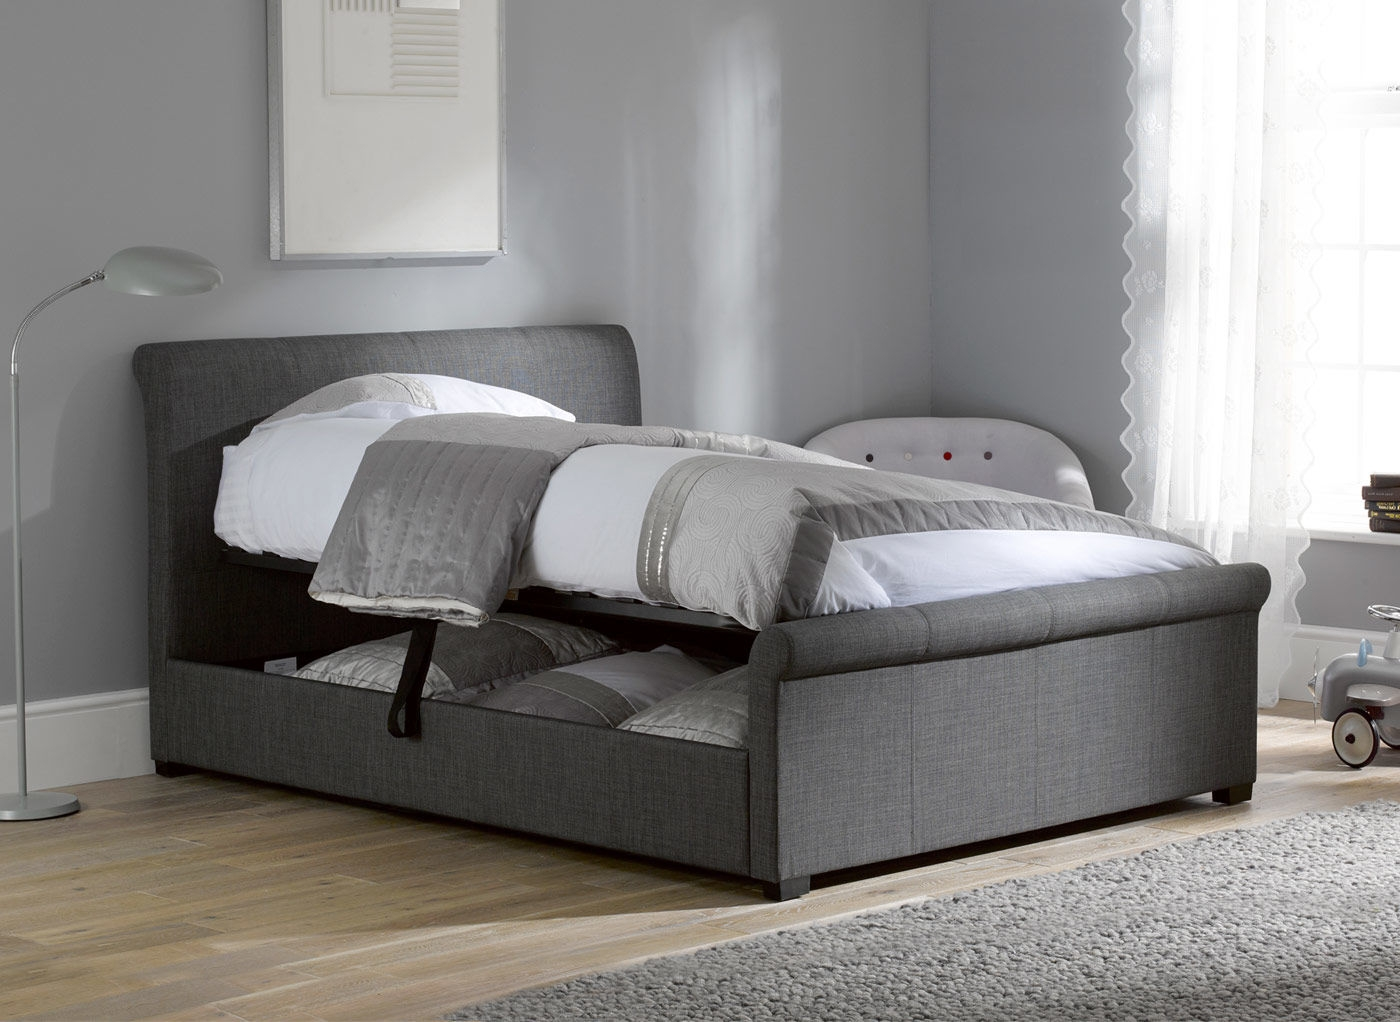 Upholstered Bed Frame With Storage1400 X 1022